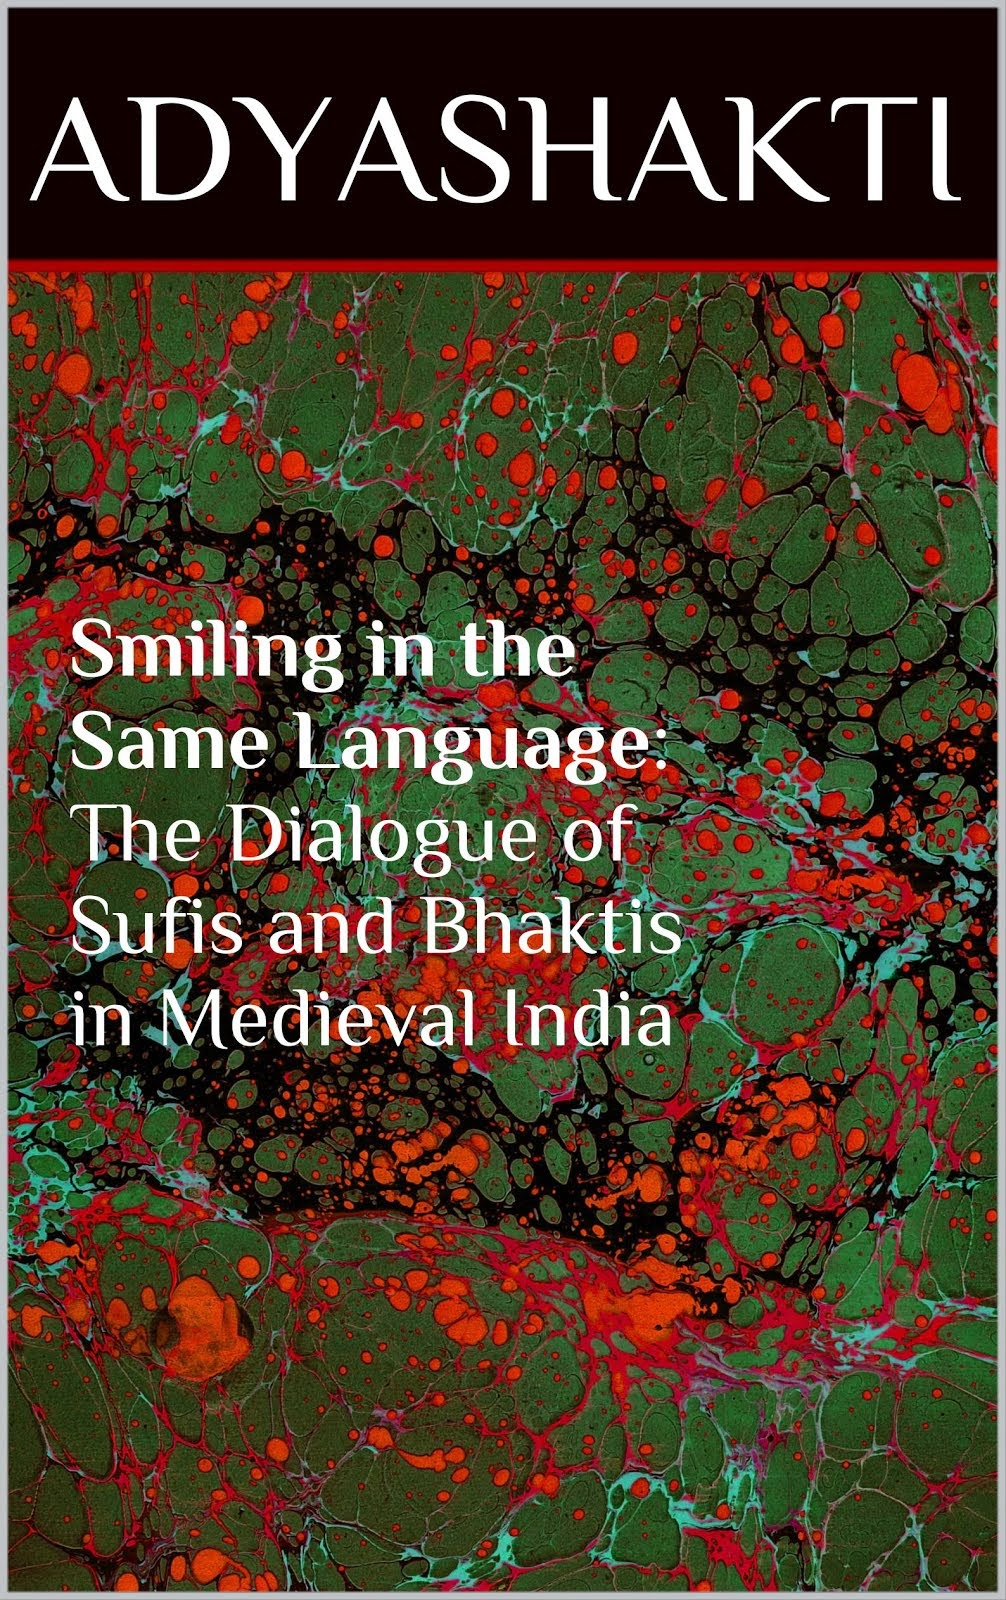 Smiling in the Same Language